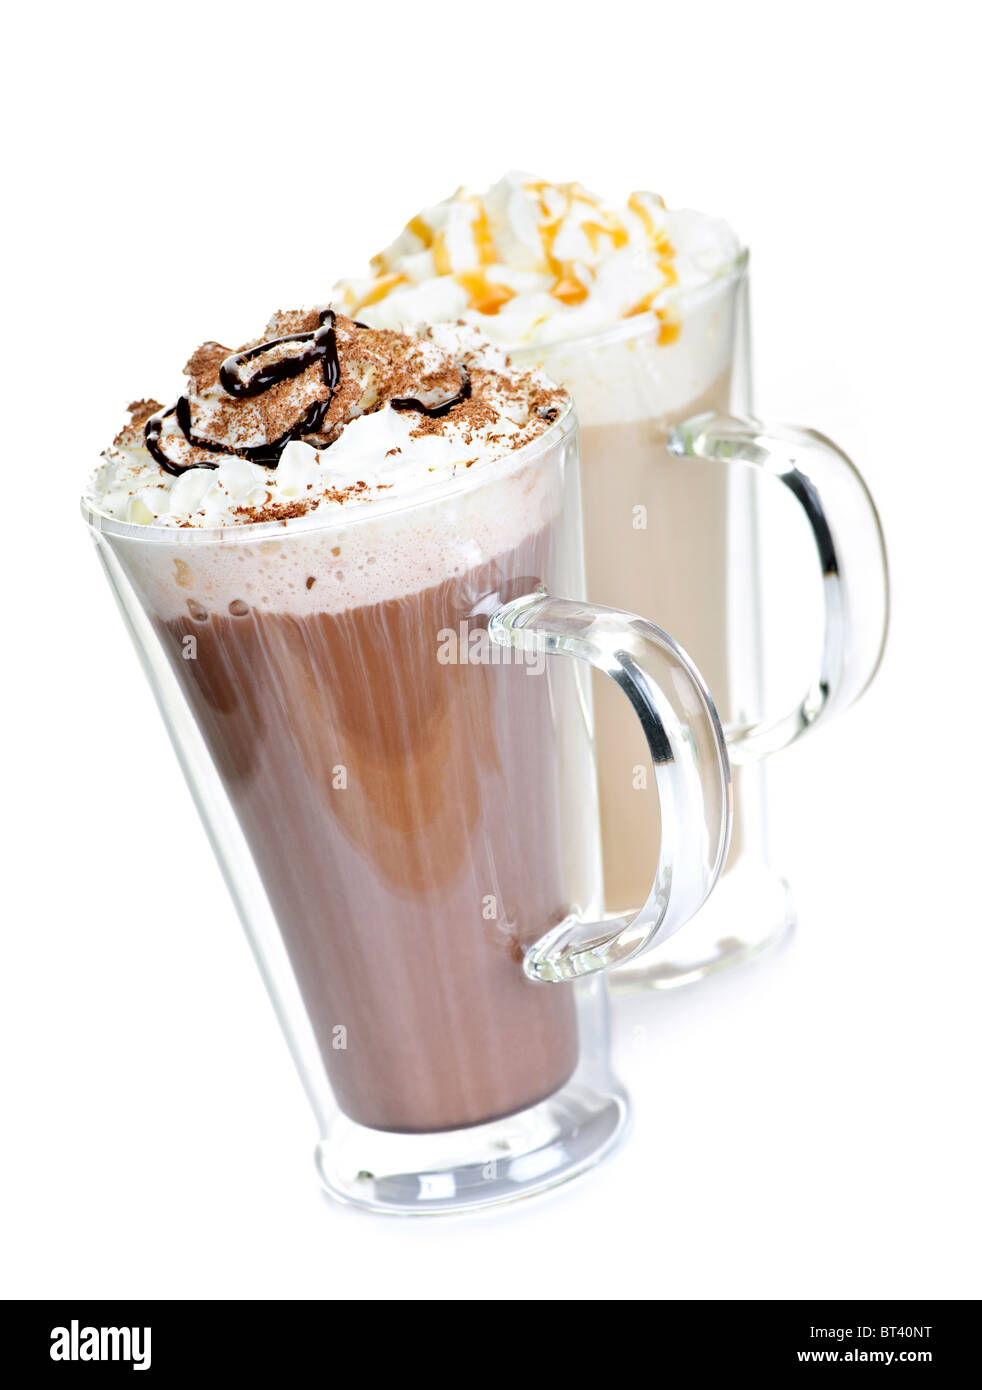 Hot chocolate and coffee beverages with whipped cream isolated on white background - Stock Image